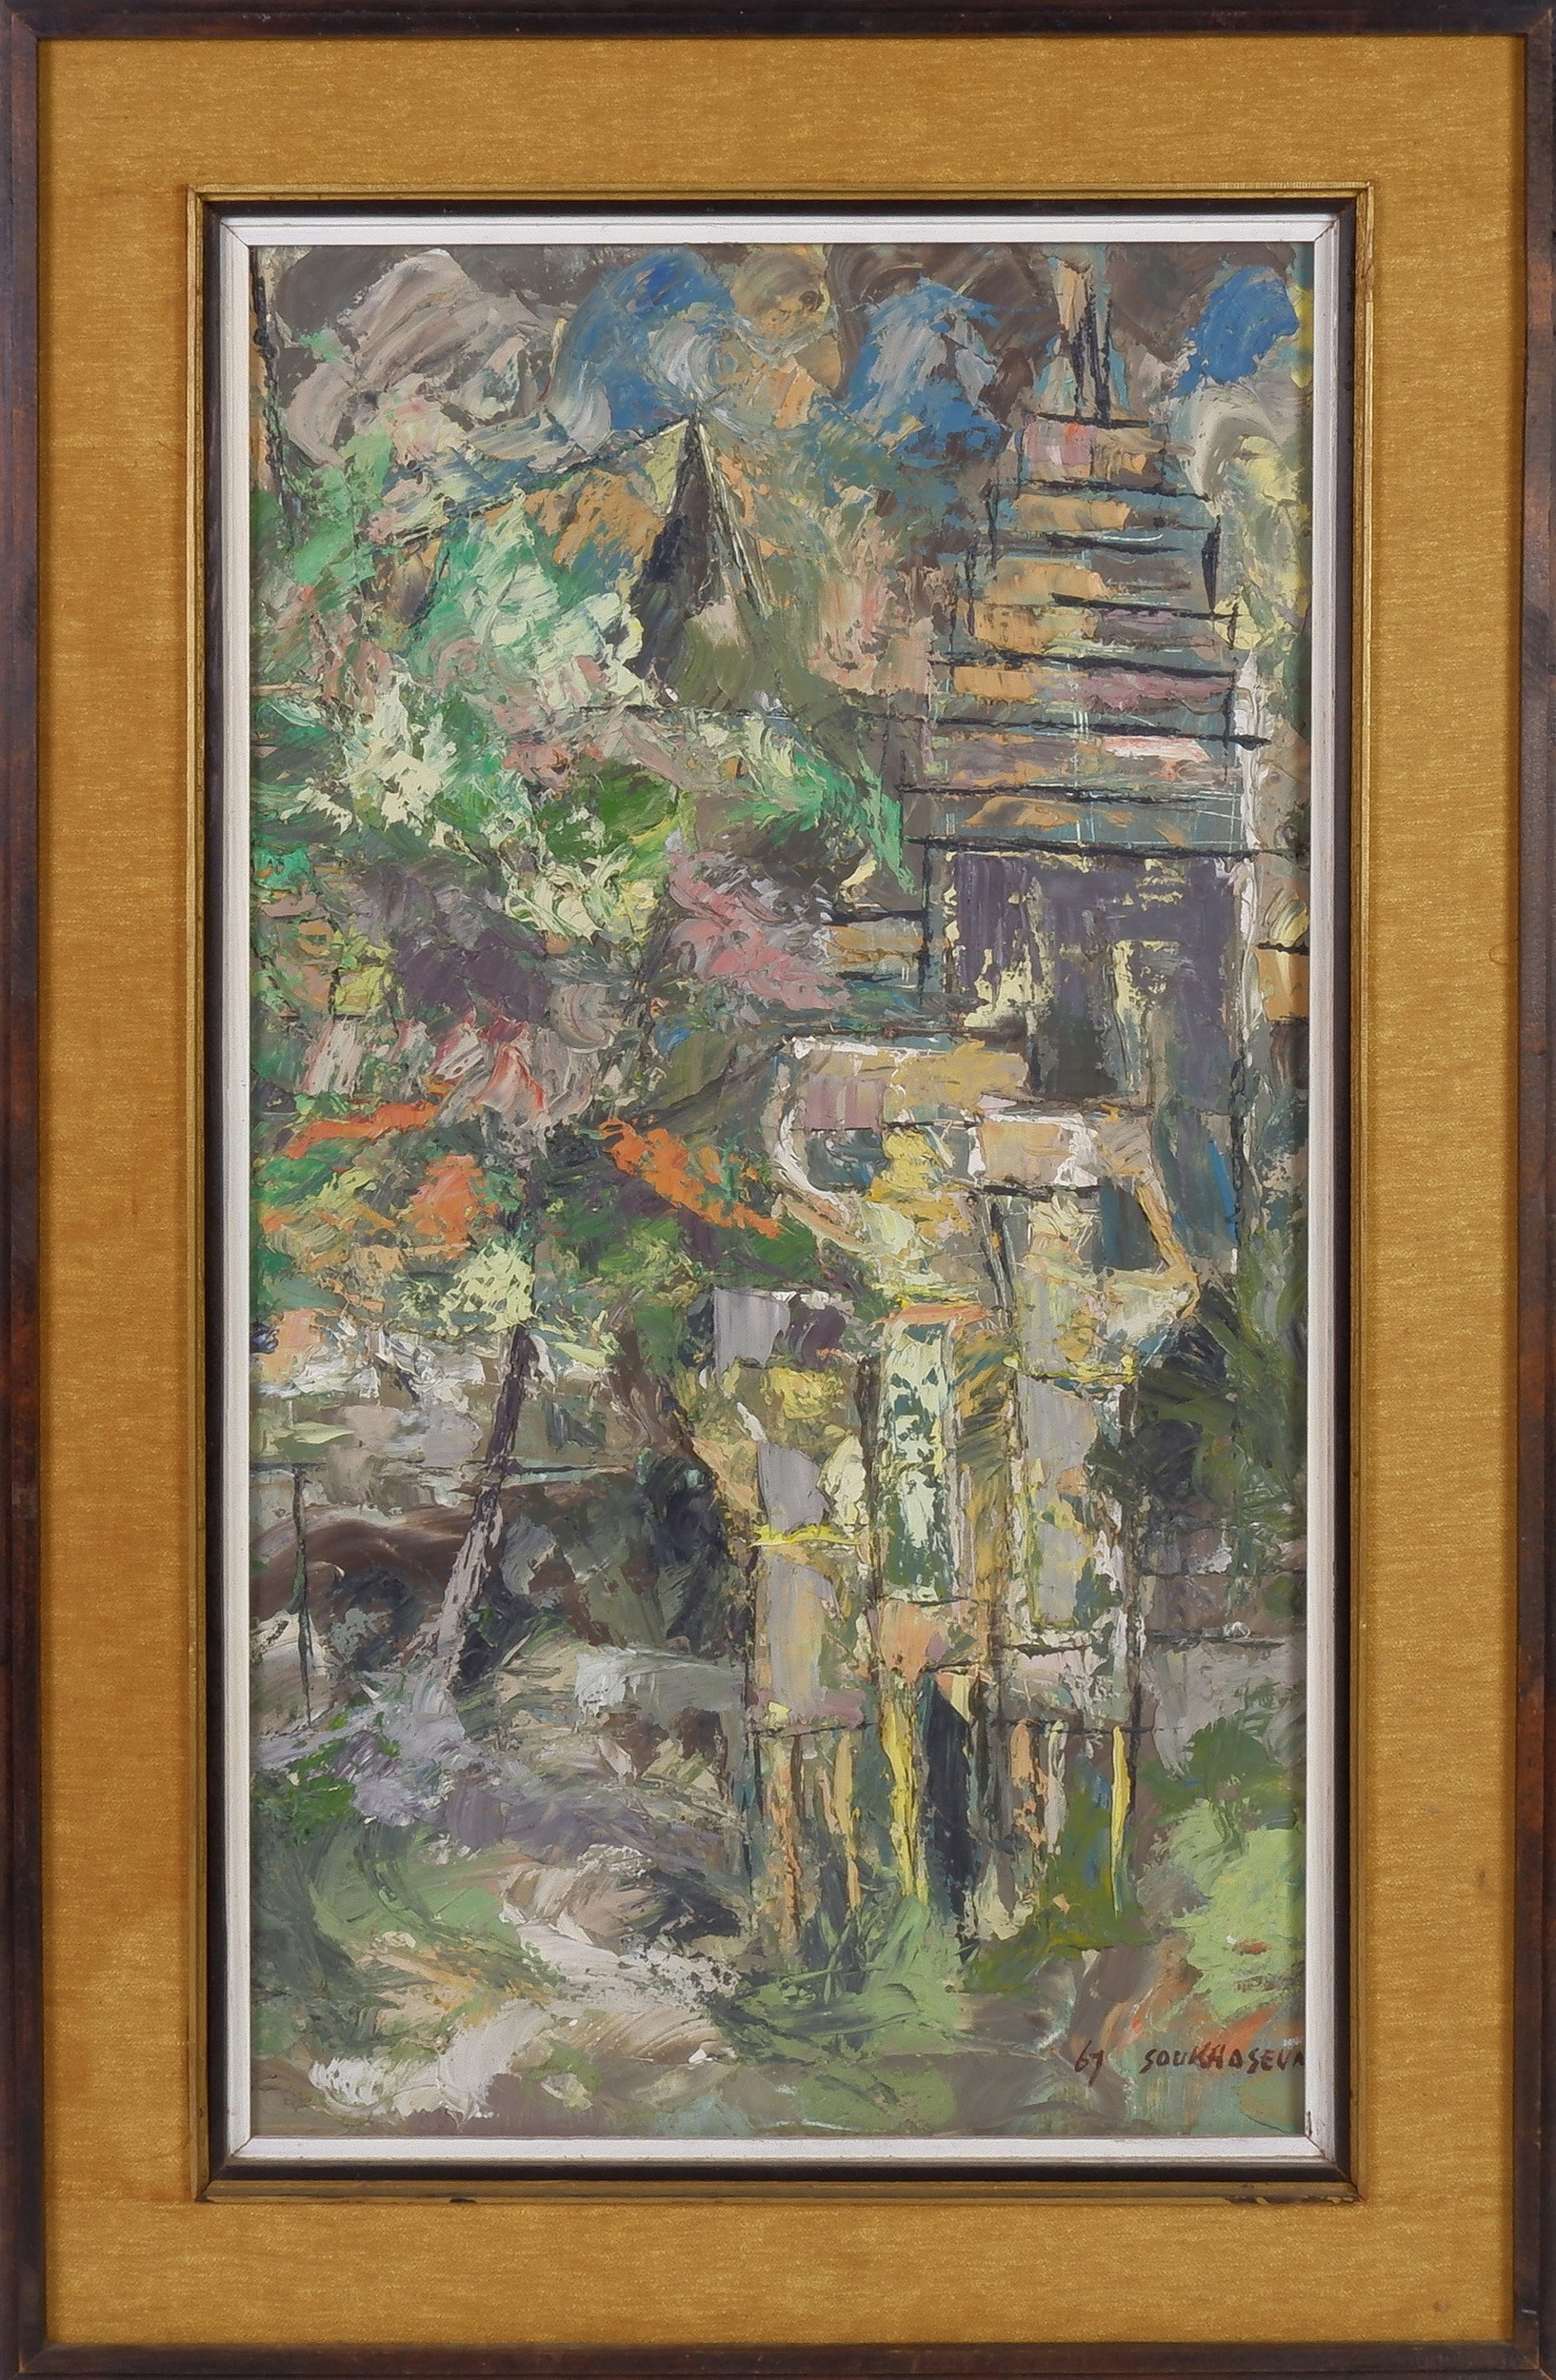 'Chanthapanya Soukhaseum (Laotian Dates Unknown) Les Ruines De Sayfong, Oil on Canvas '